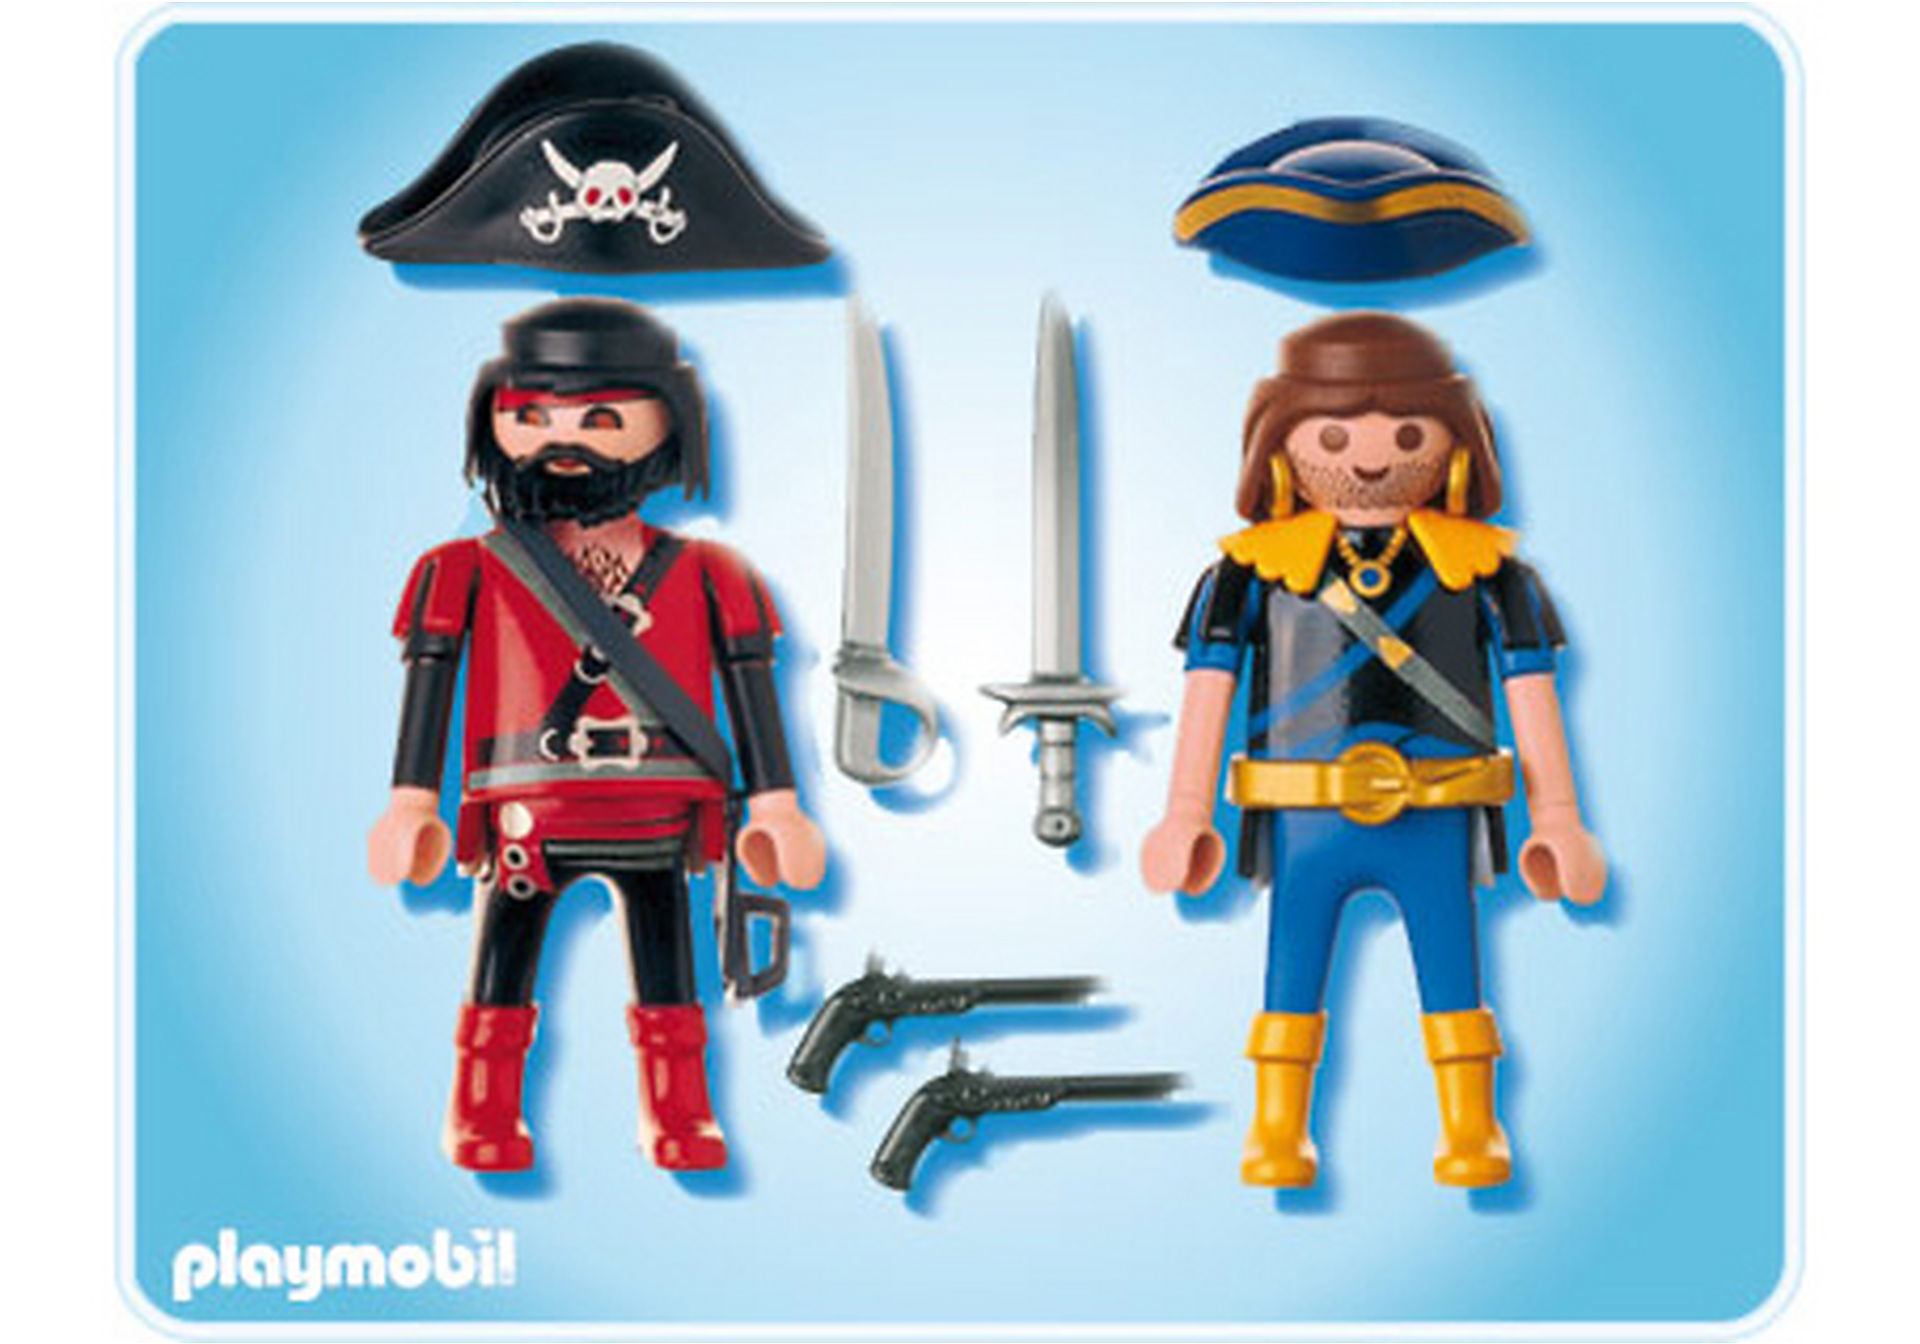 5814-A PLAYMOBIL Duo Pirate et corsaire zoom image2